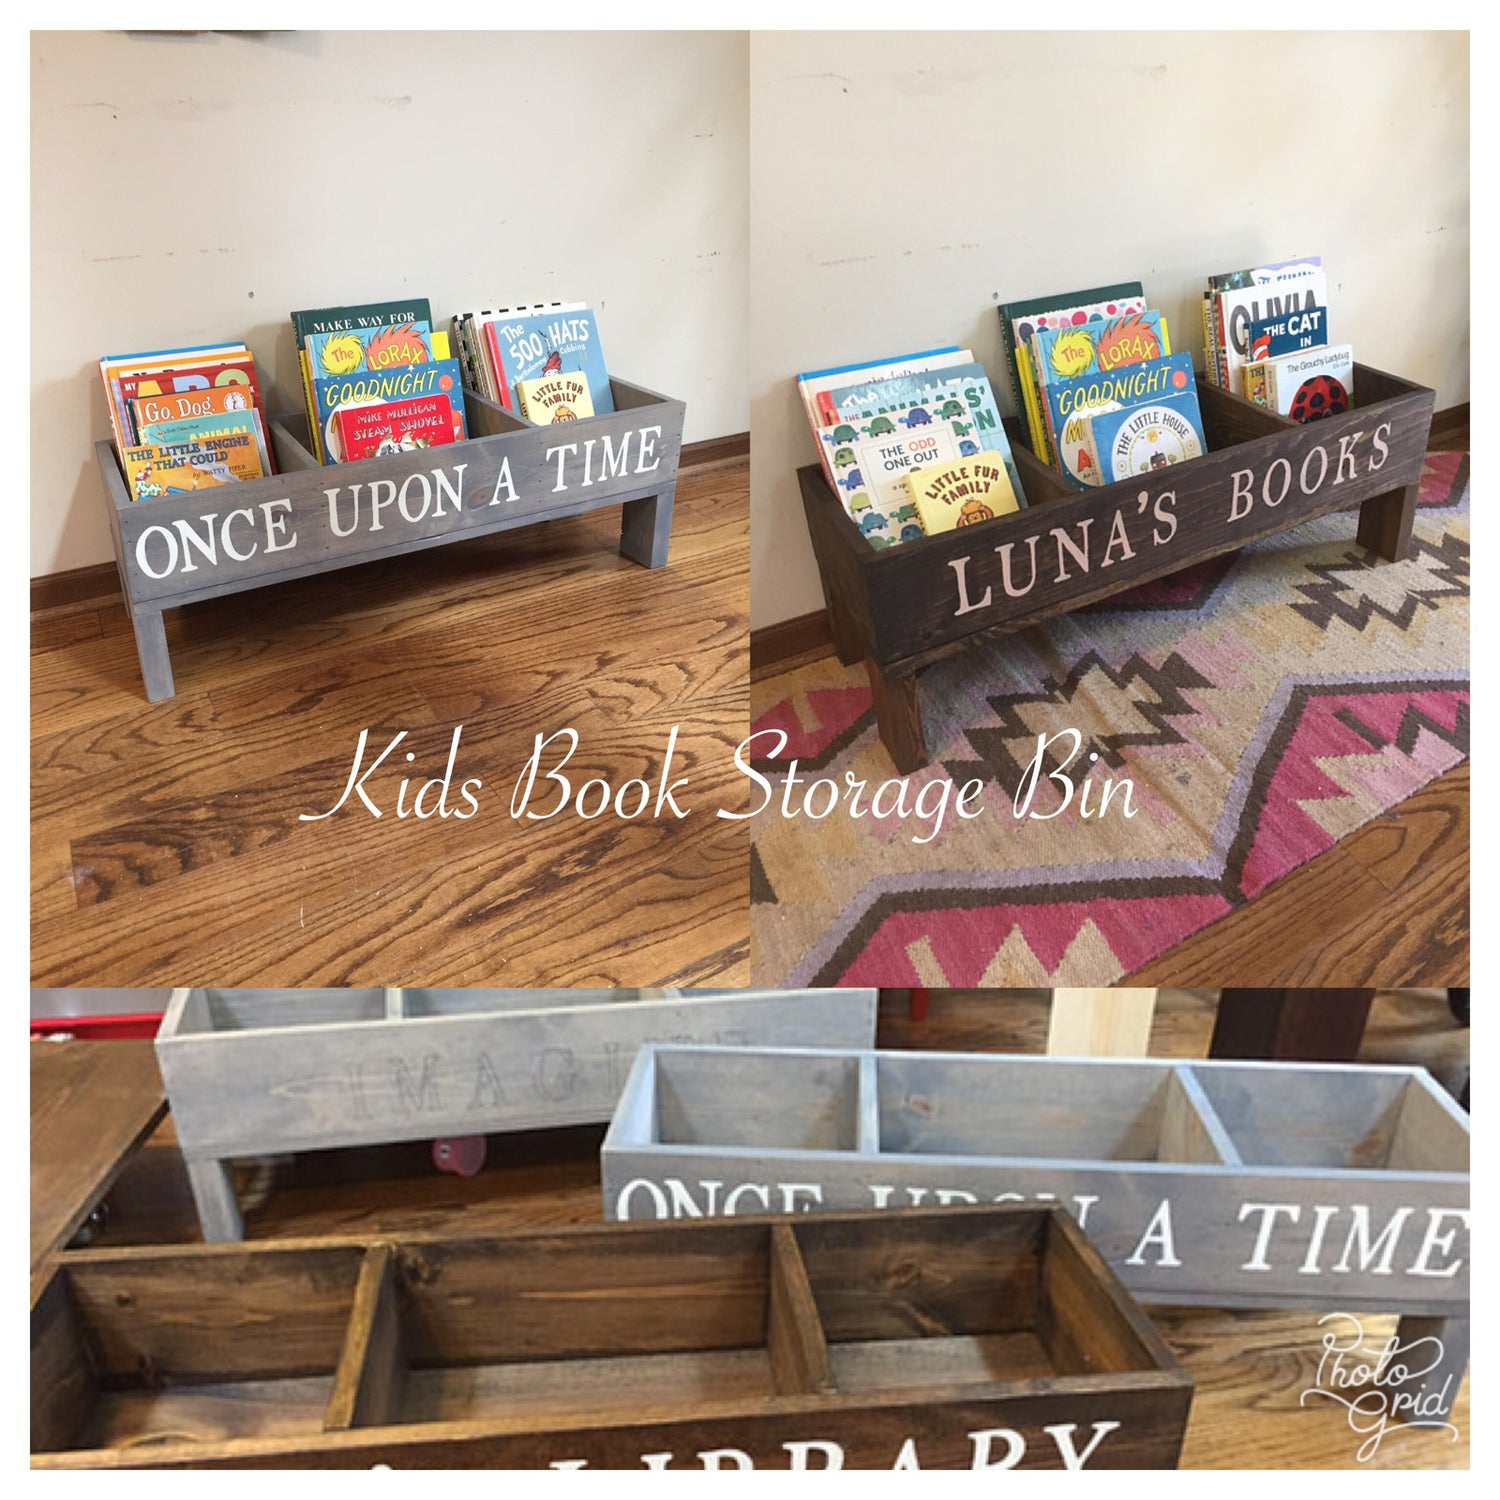 Image of Kids Book Storage Bin